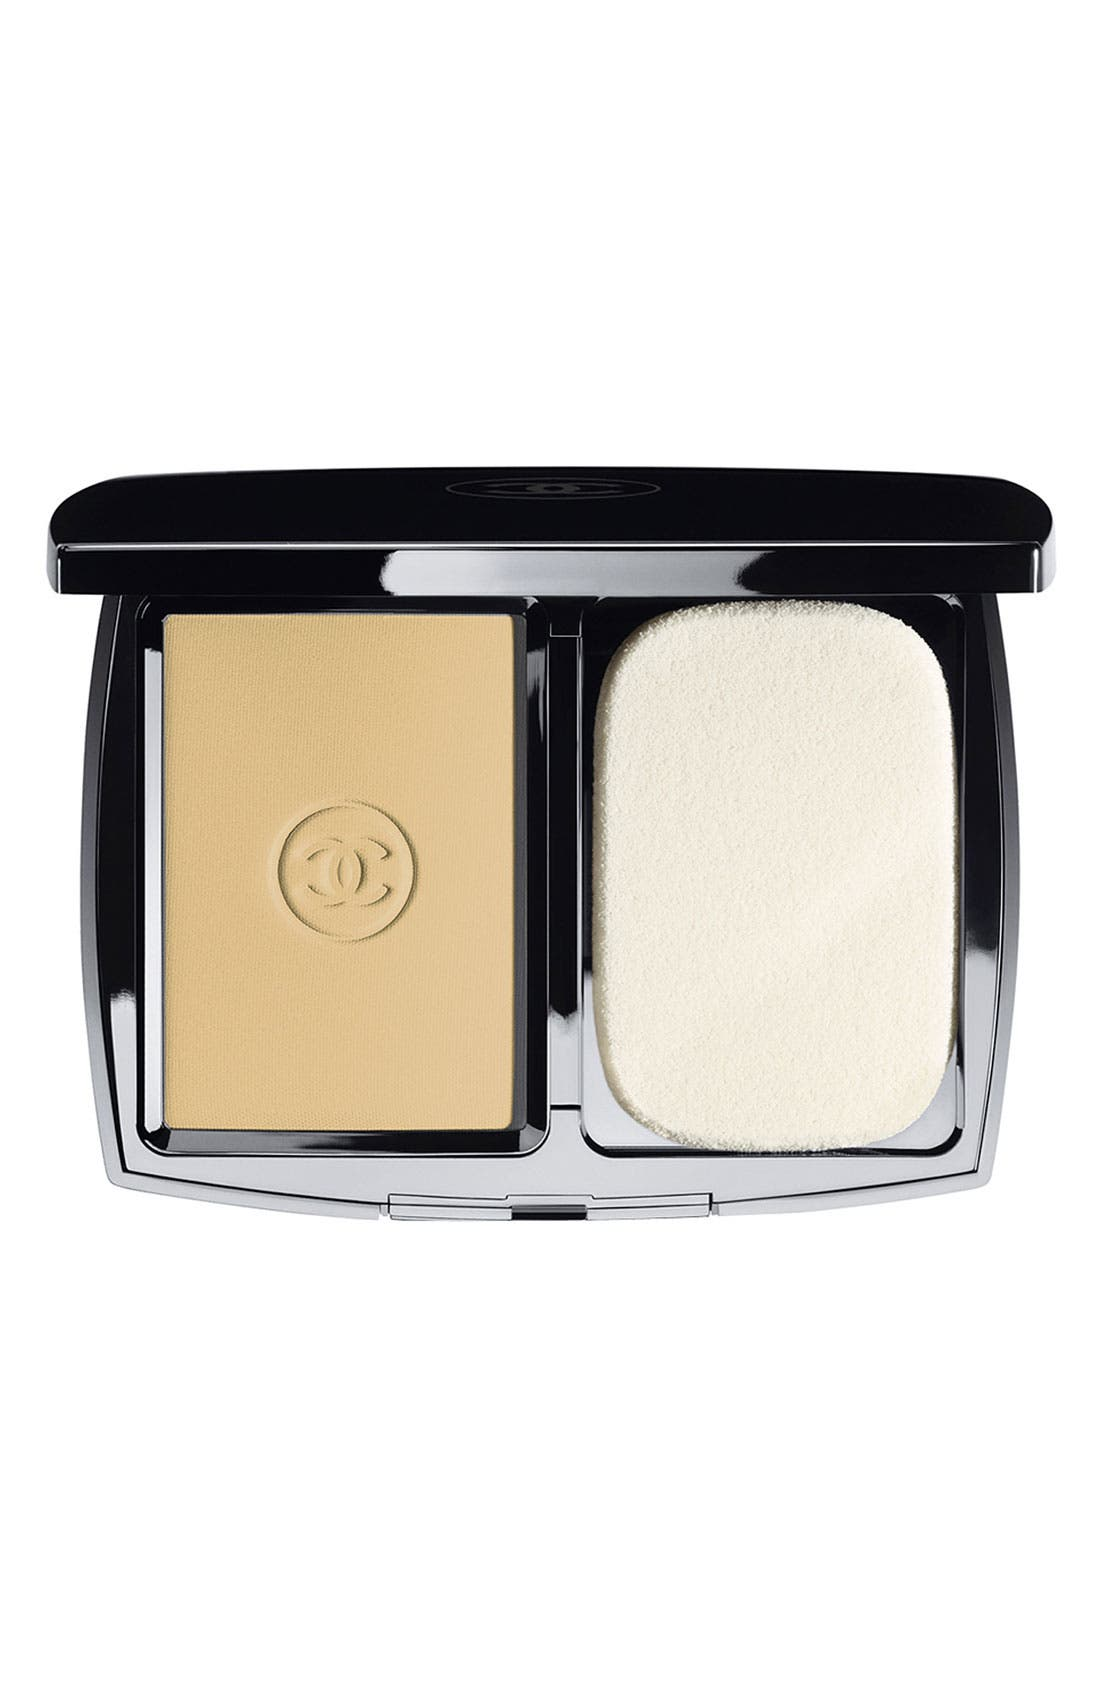 DOUBLE PERFECTION LUMIÈRE<br />Long-Wear Flawless Sunscreen Powder Makeup Broad Spectrum SPF 15,                             Main thumbnail 11, color,